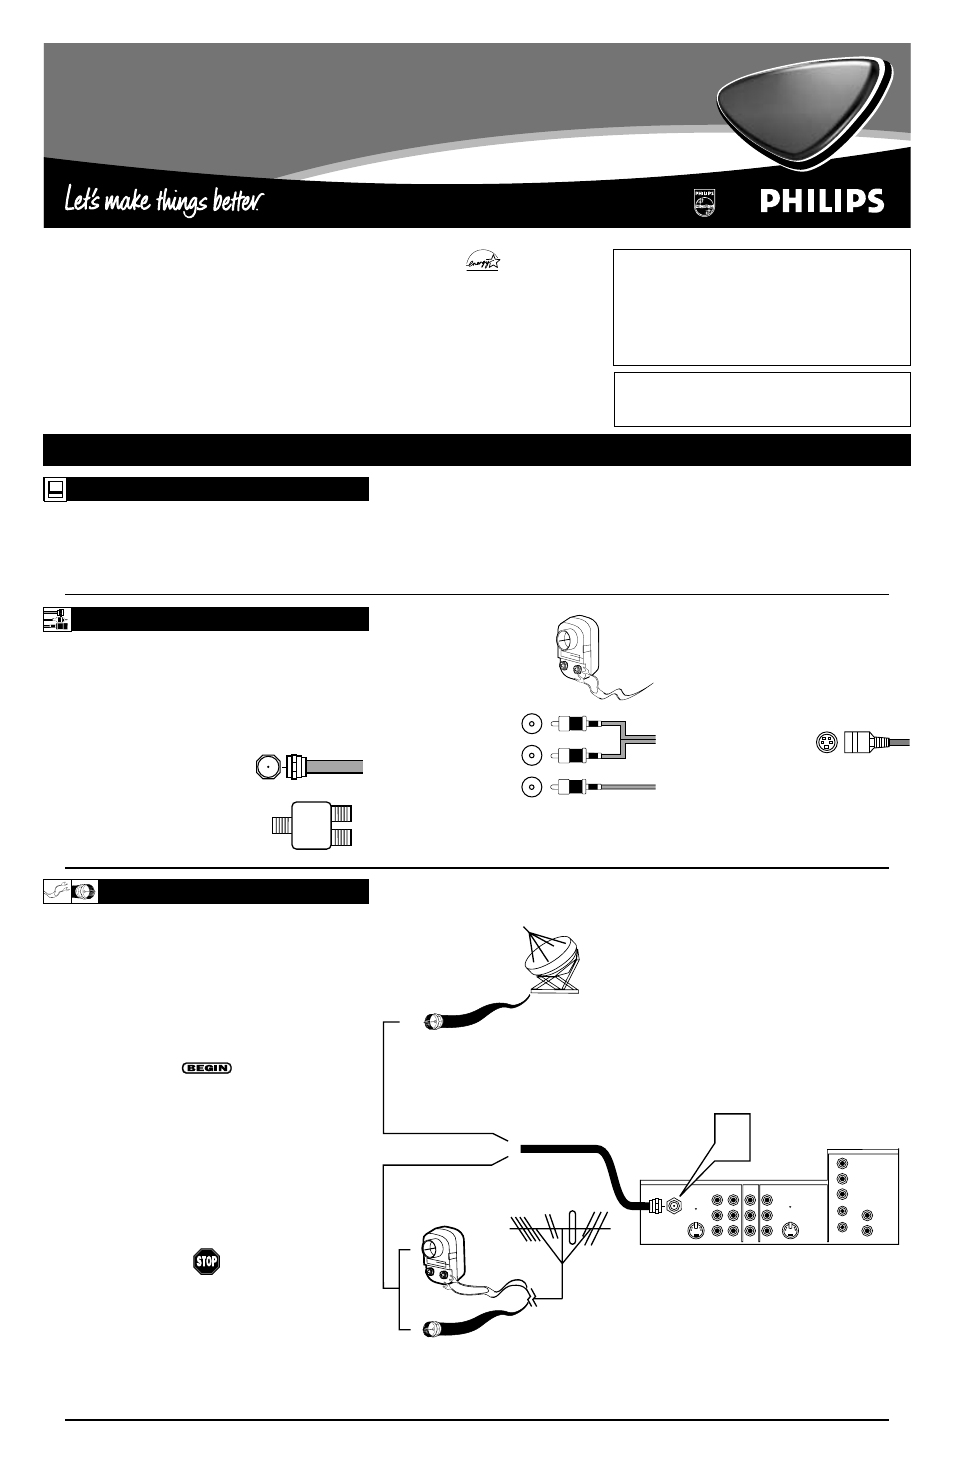 Philips 50PP 9202 User Manual | 8 pages | Also for: 60PP9202